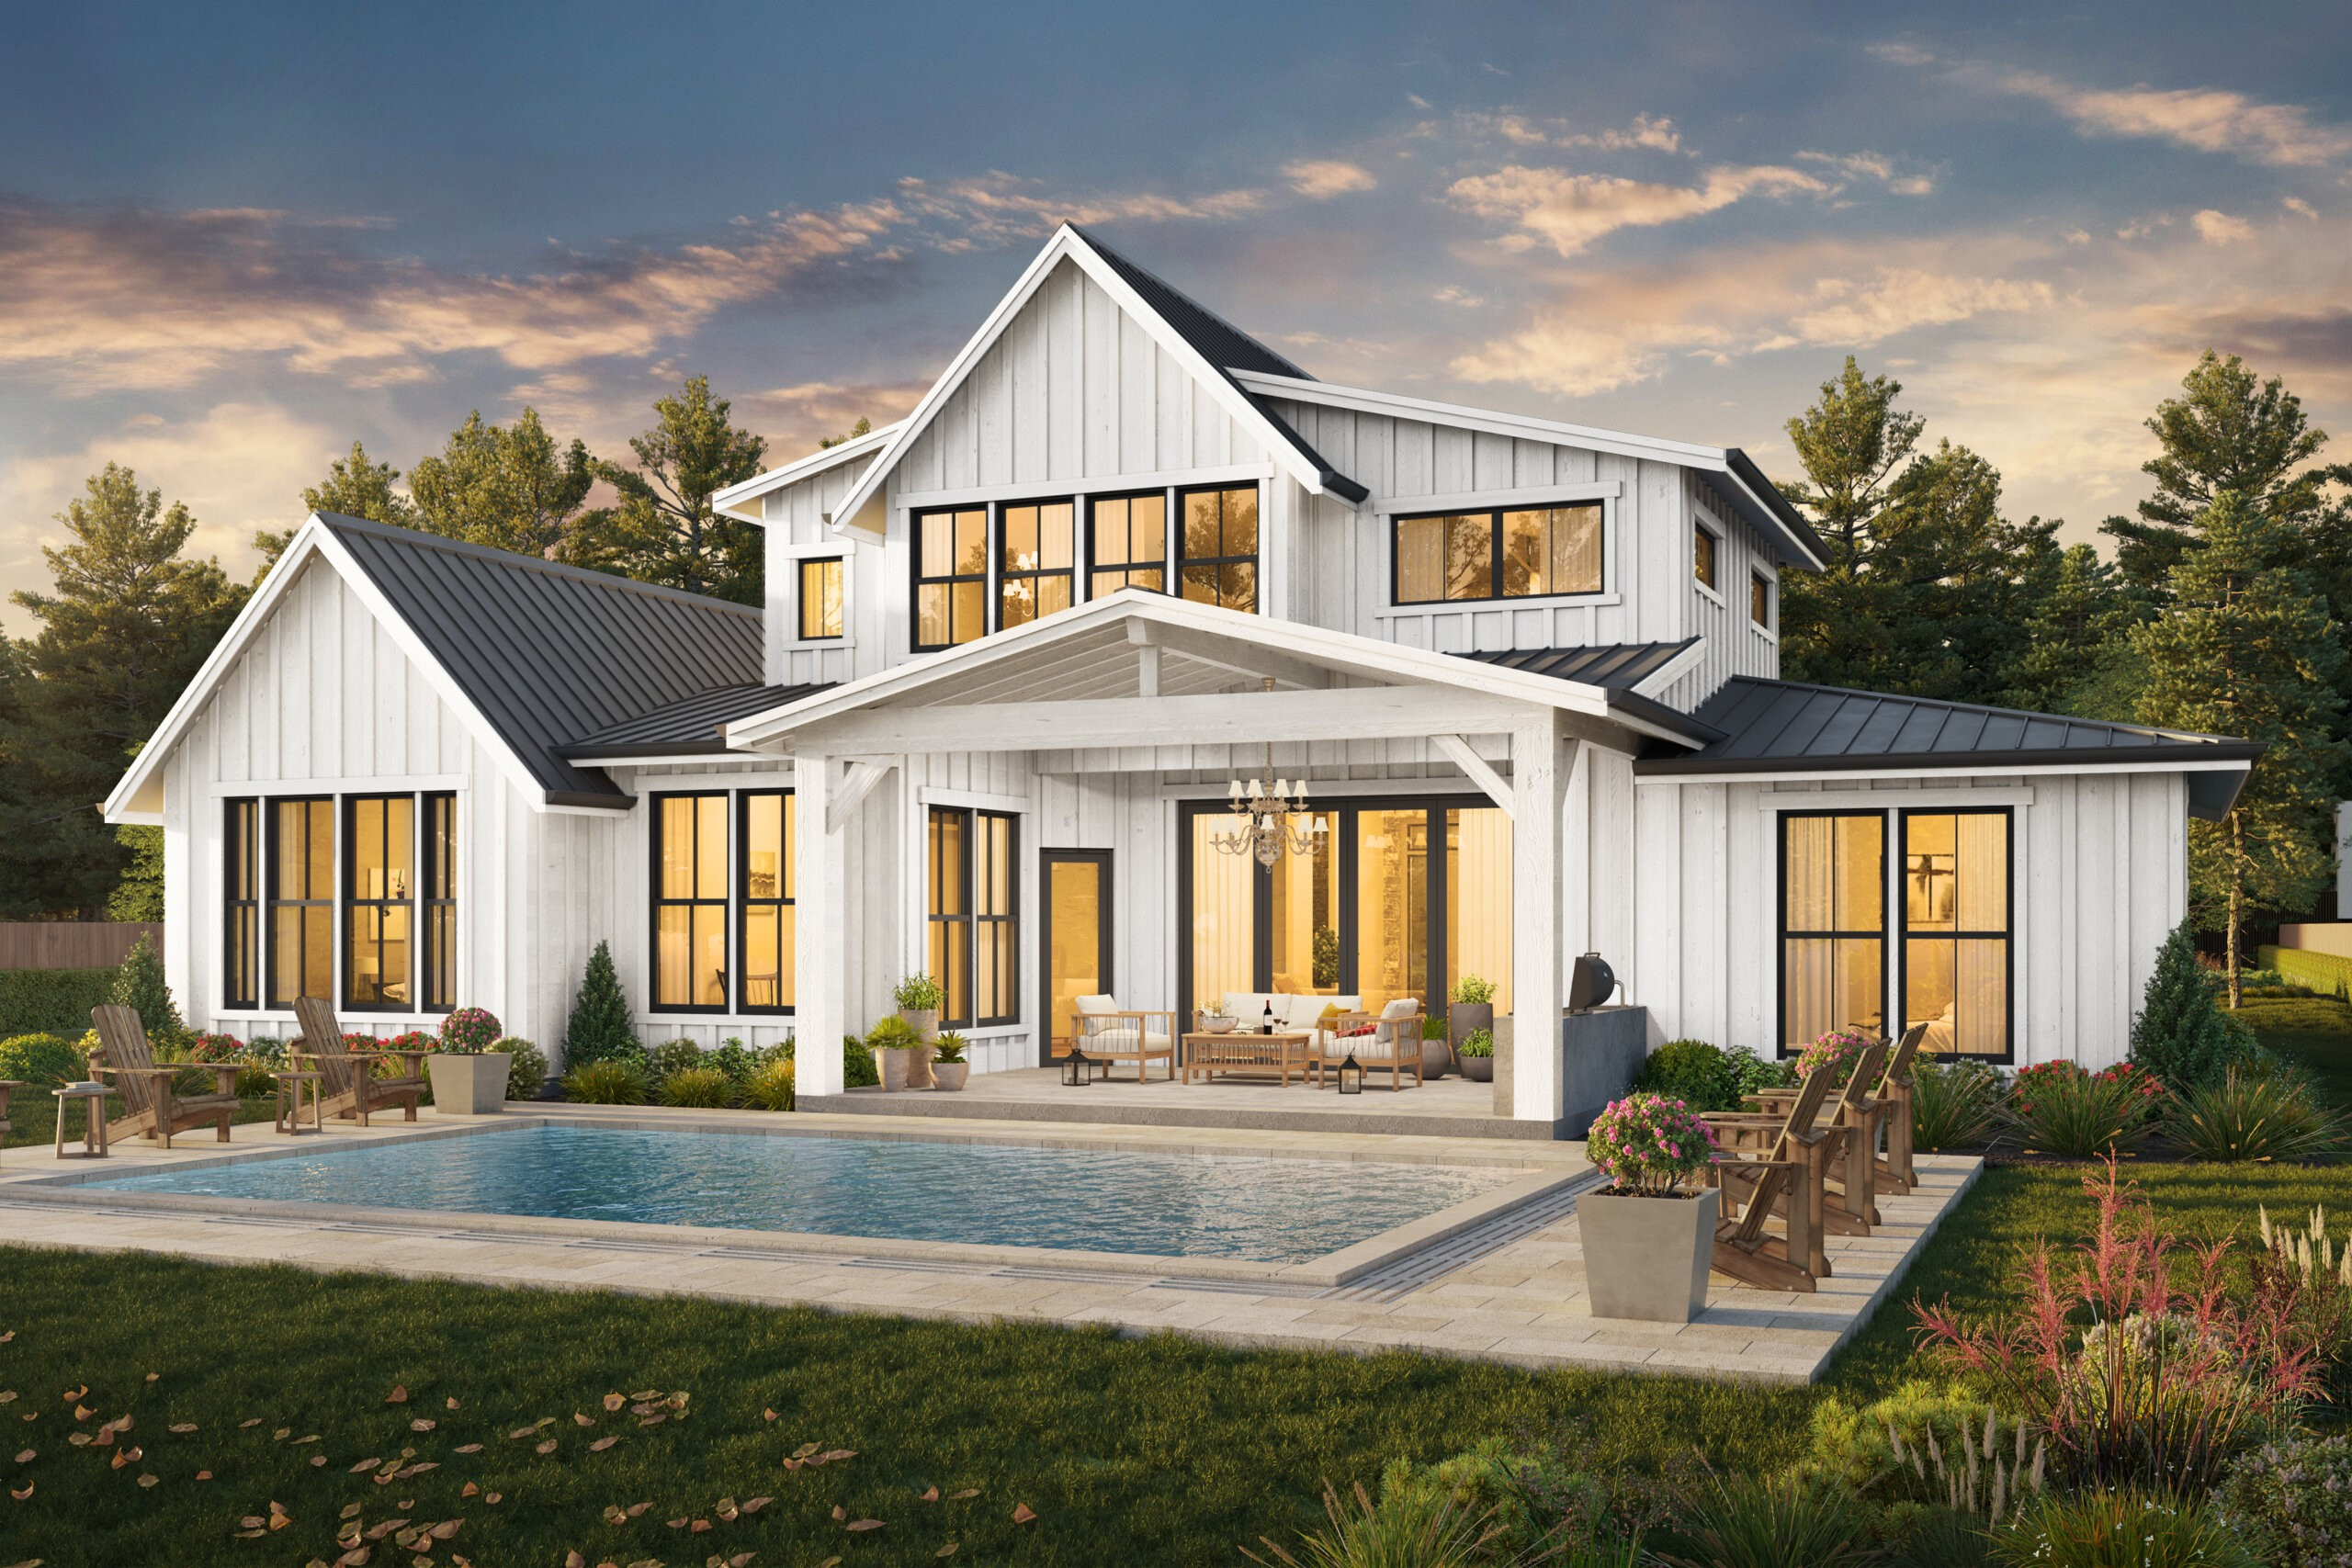 Pendleton House Plan | Modern 2 Story Farmhouse Plans with ...